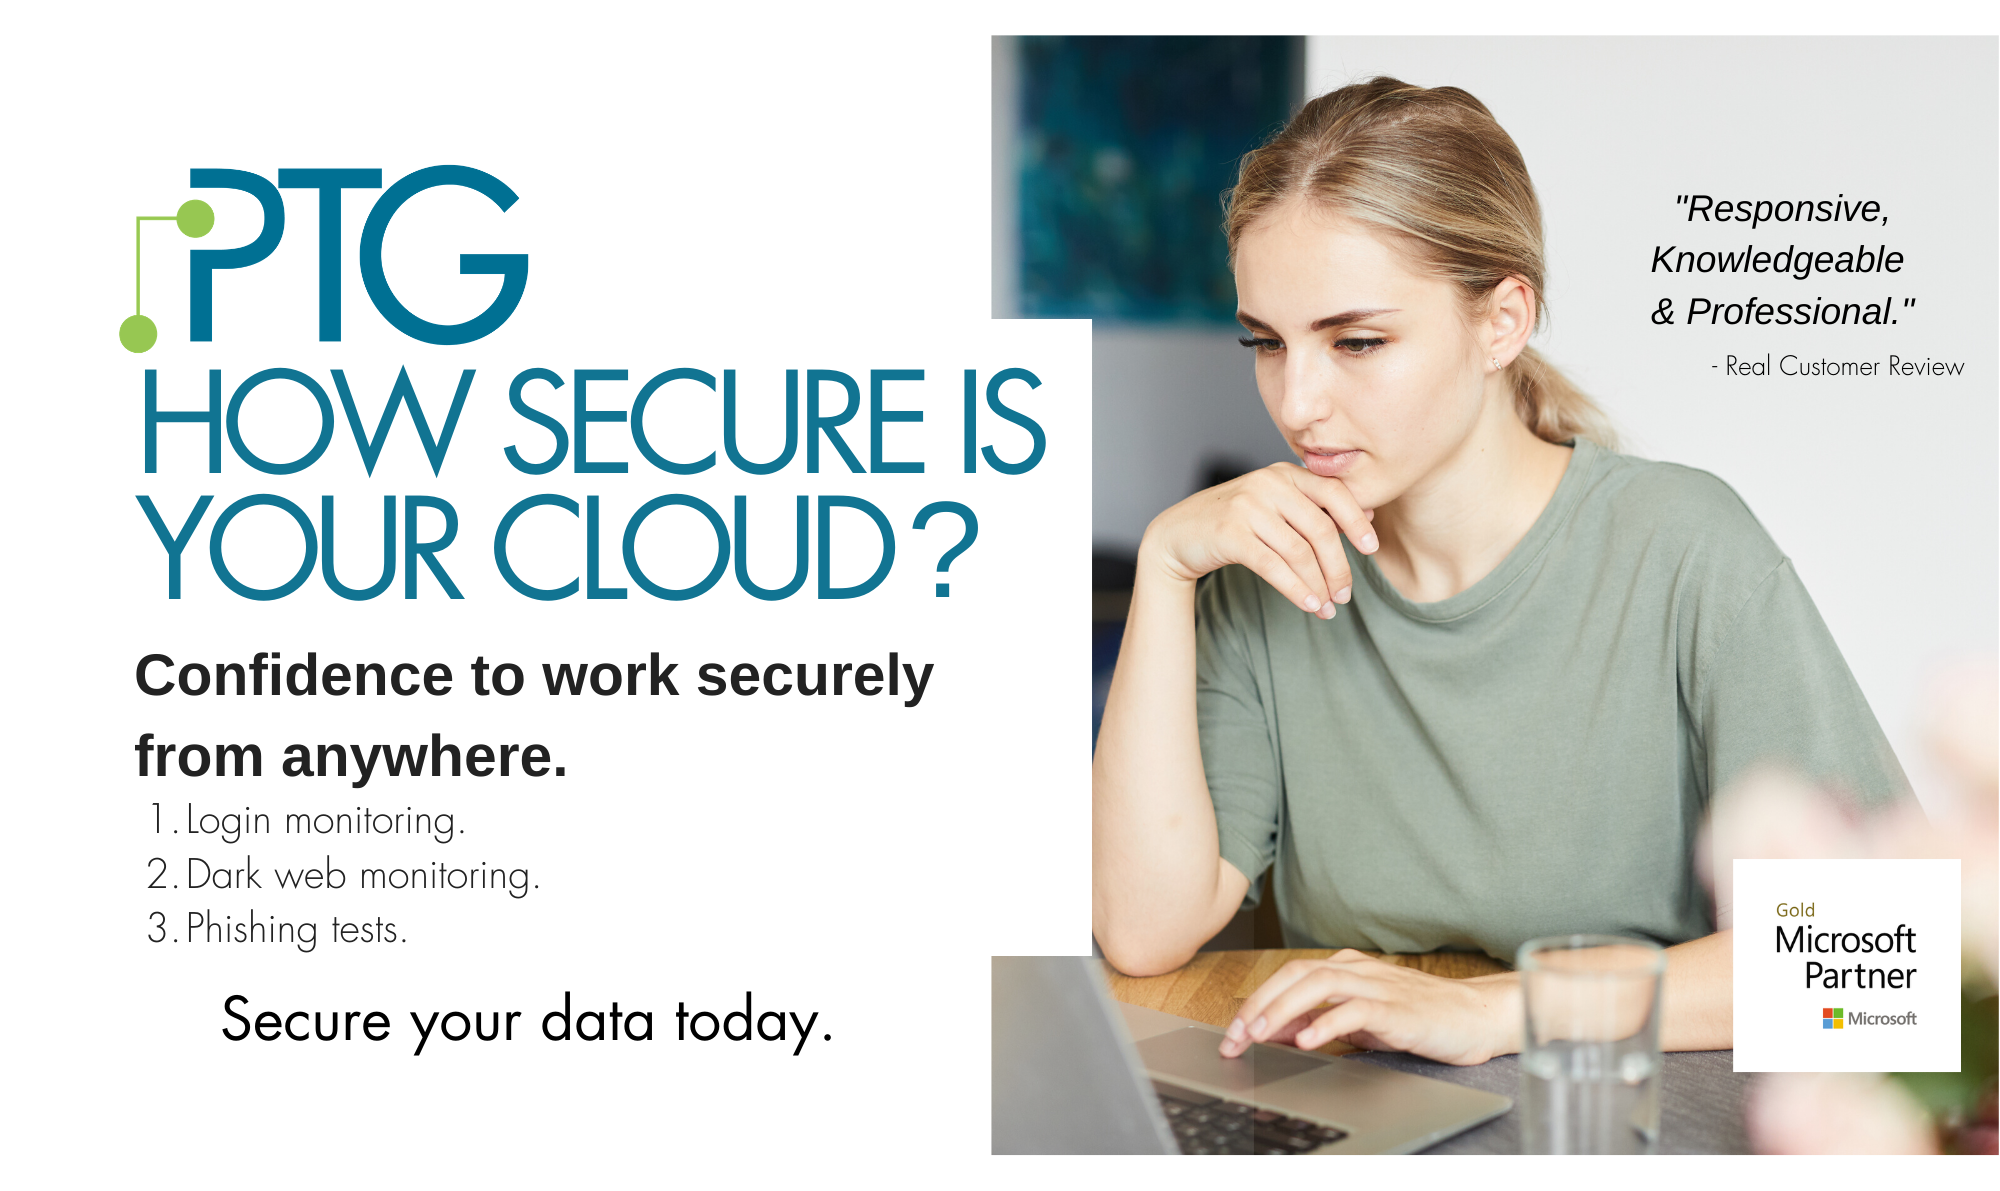 cloud security print ad (3)